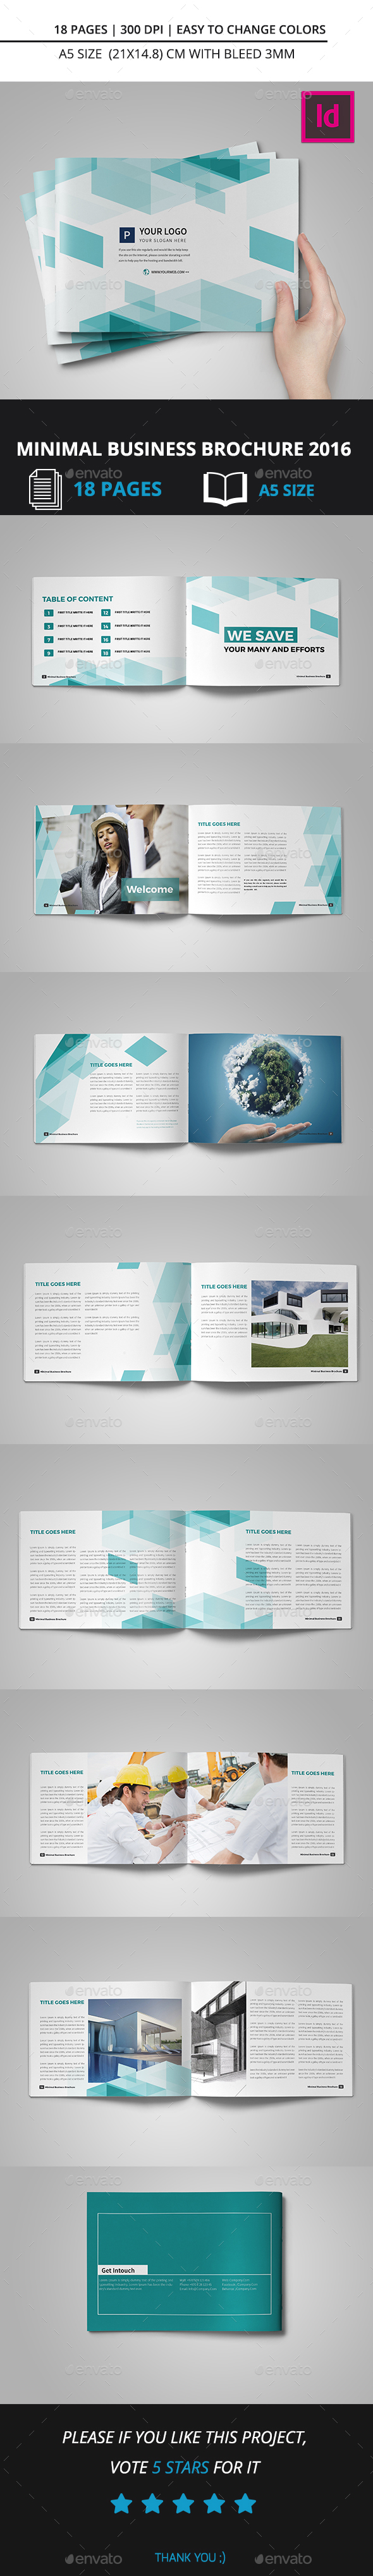 Minimal Business Brochure 2016 - Corporate Brochures